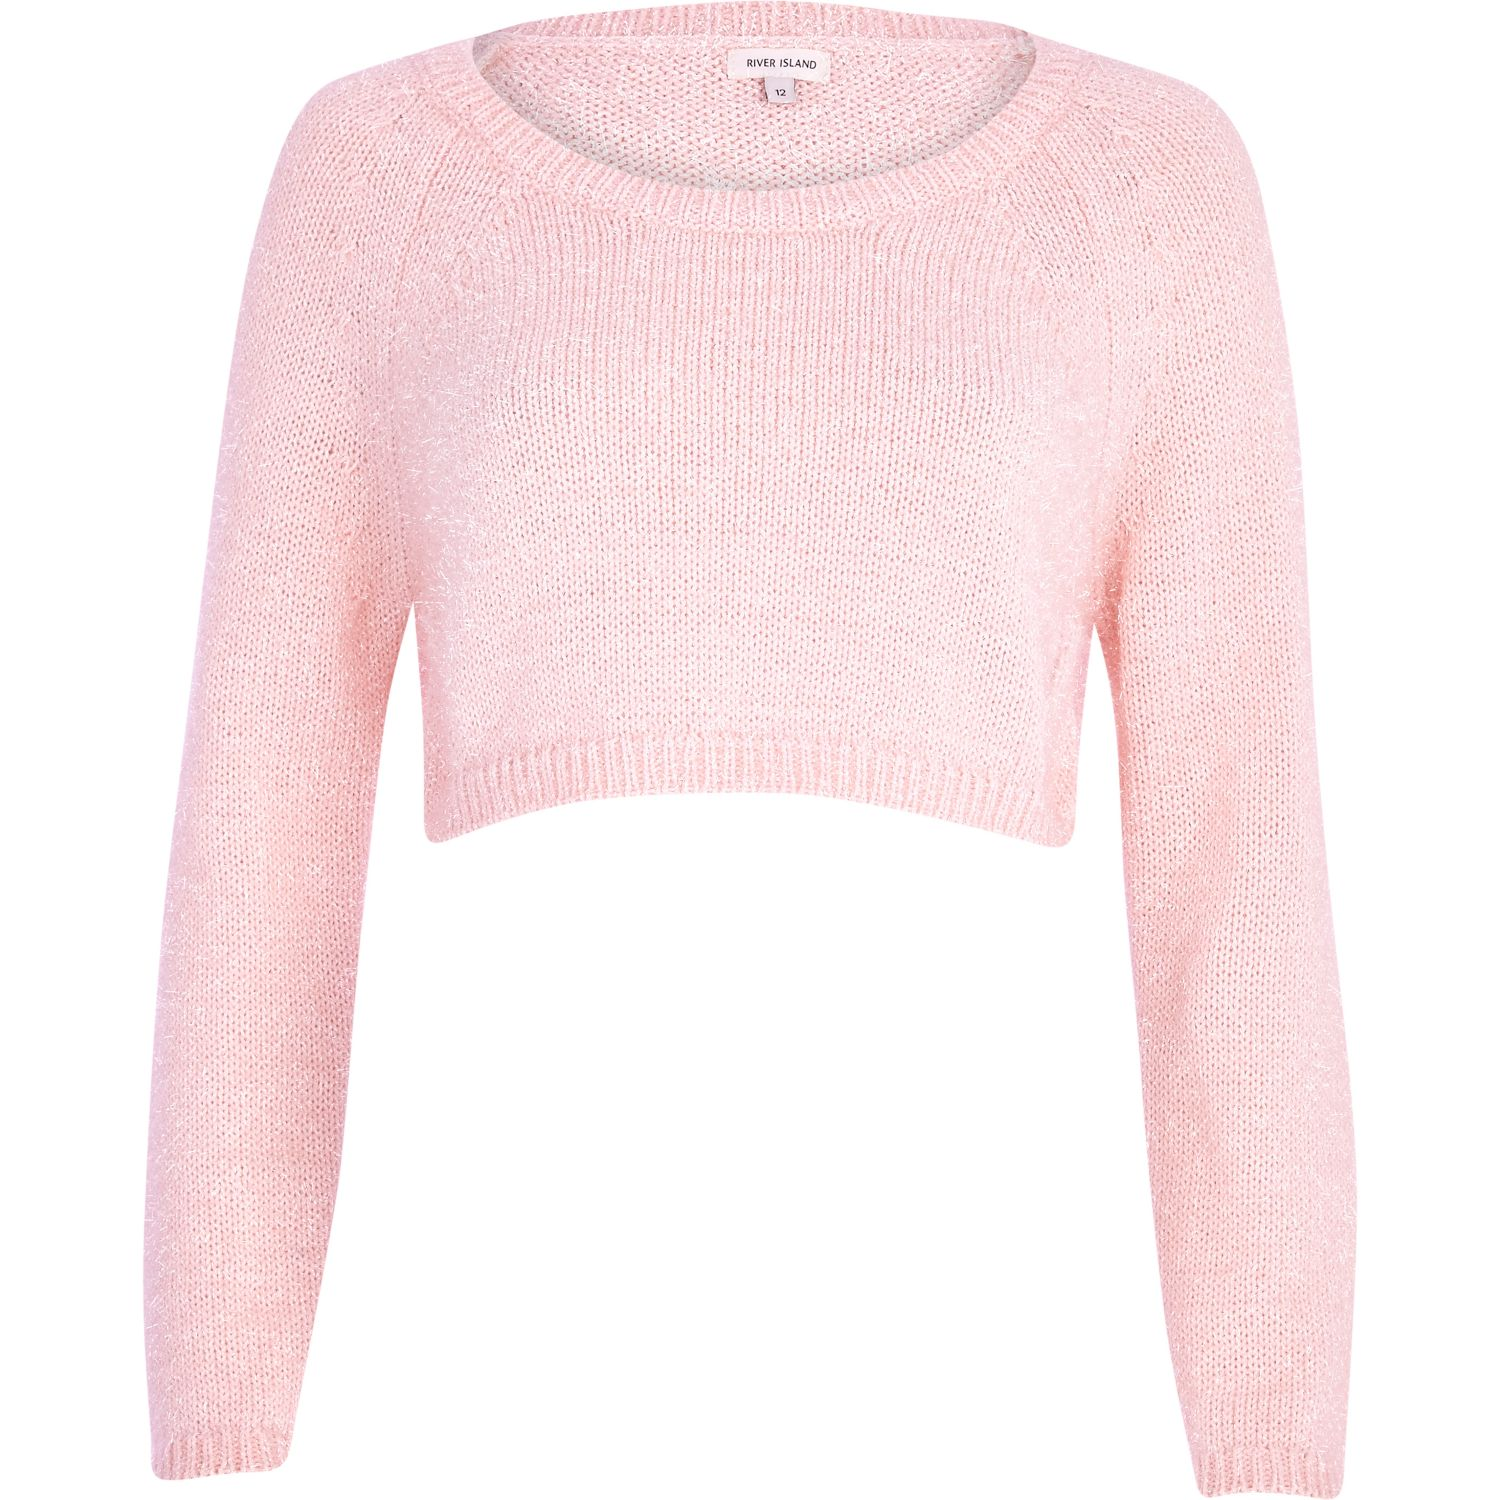 pink cropped sweater - knitwear - sale - women